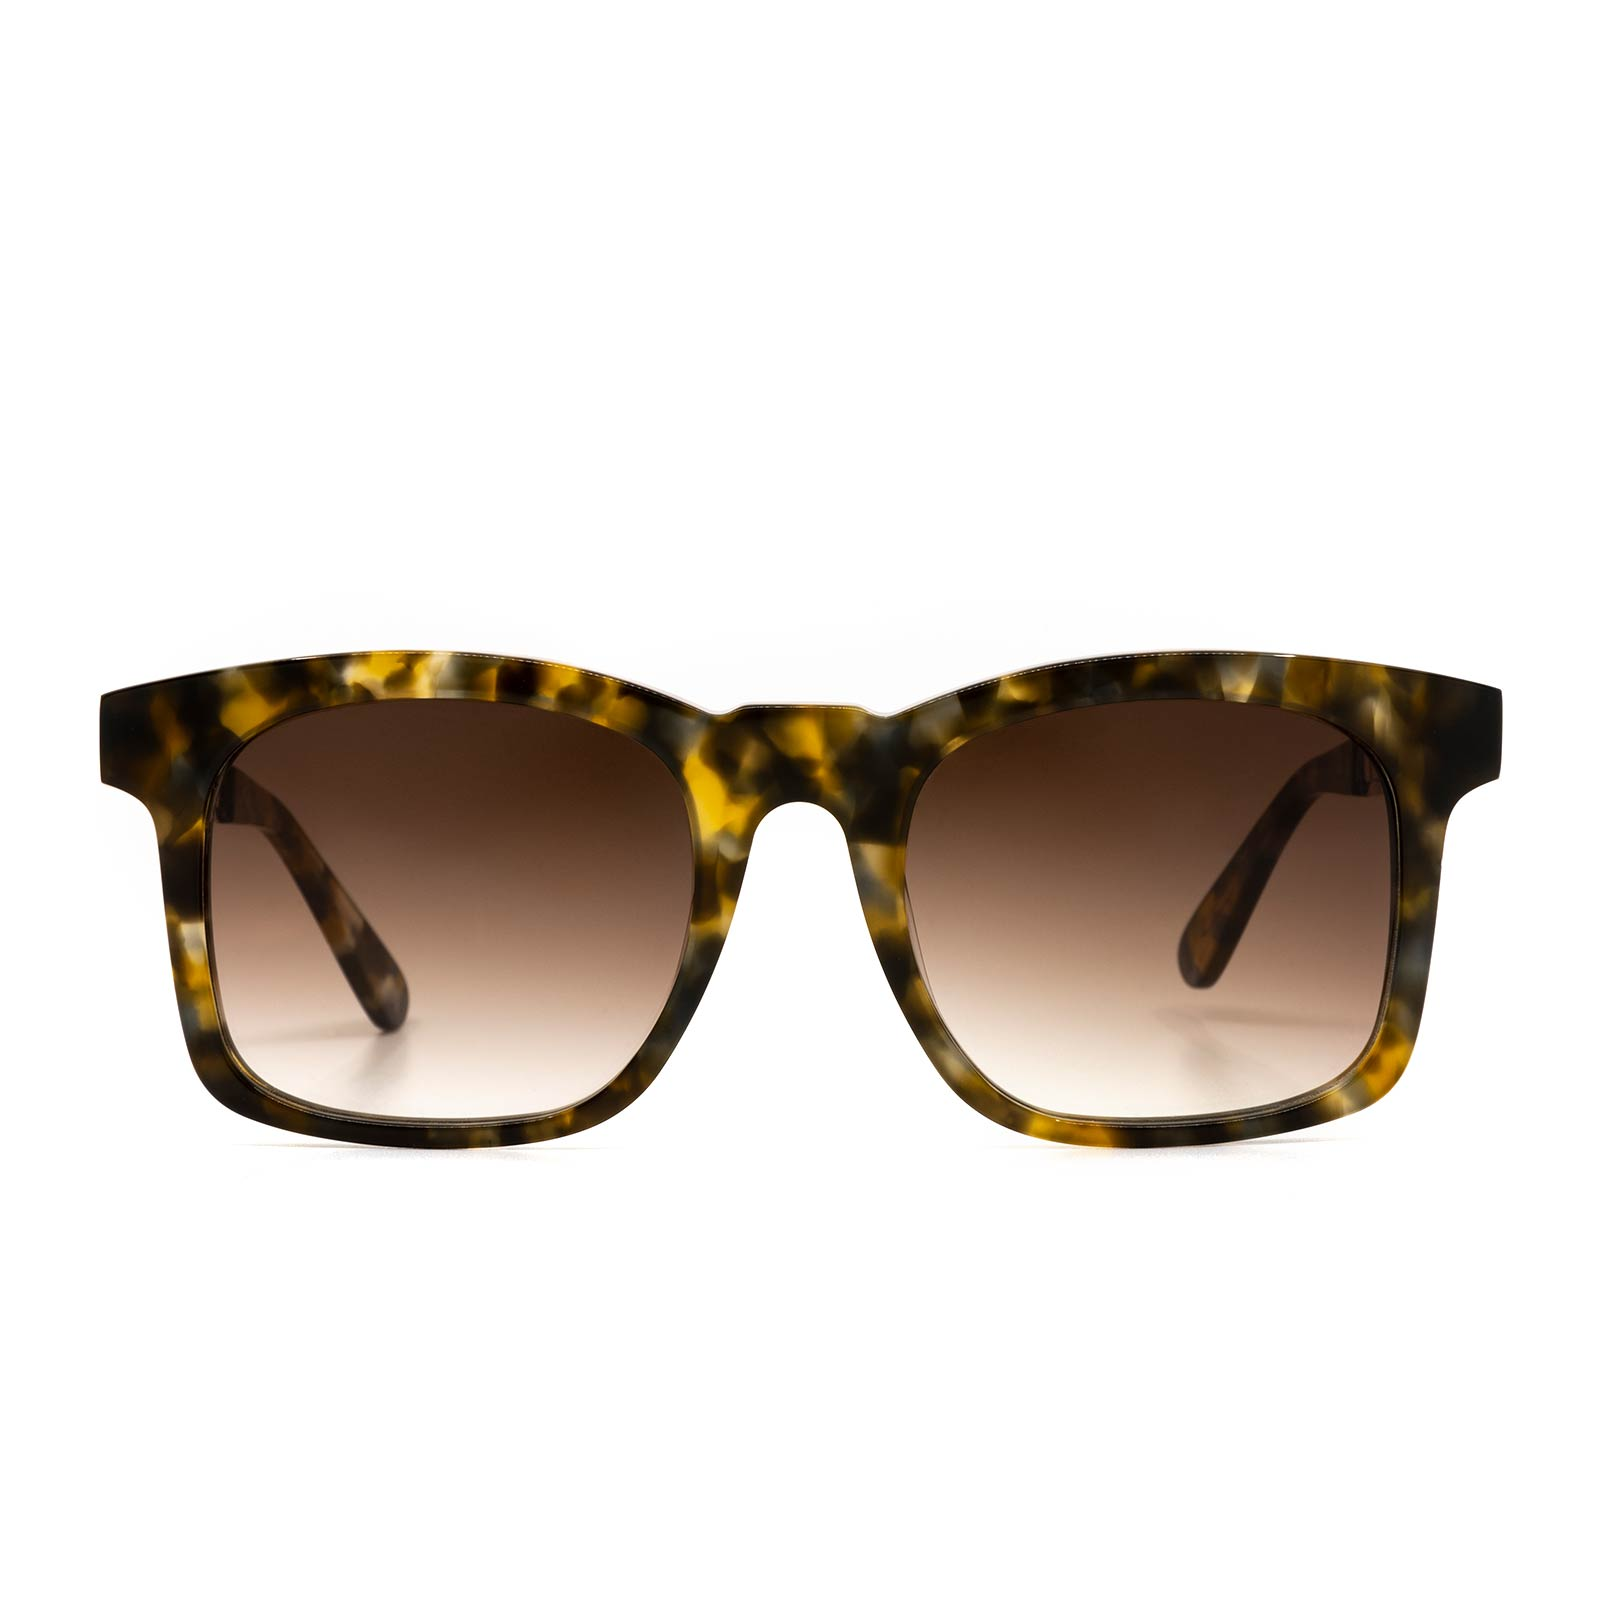 CHANCE - SEA TORTOISE W/GOLD TEMPLES + BROWN GRADIENT